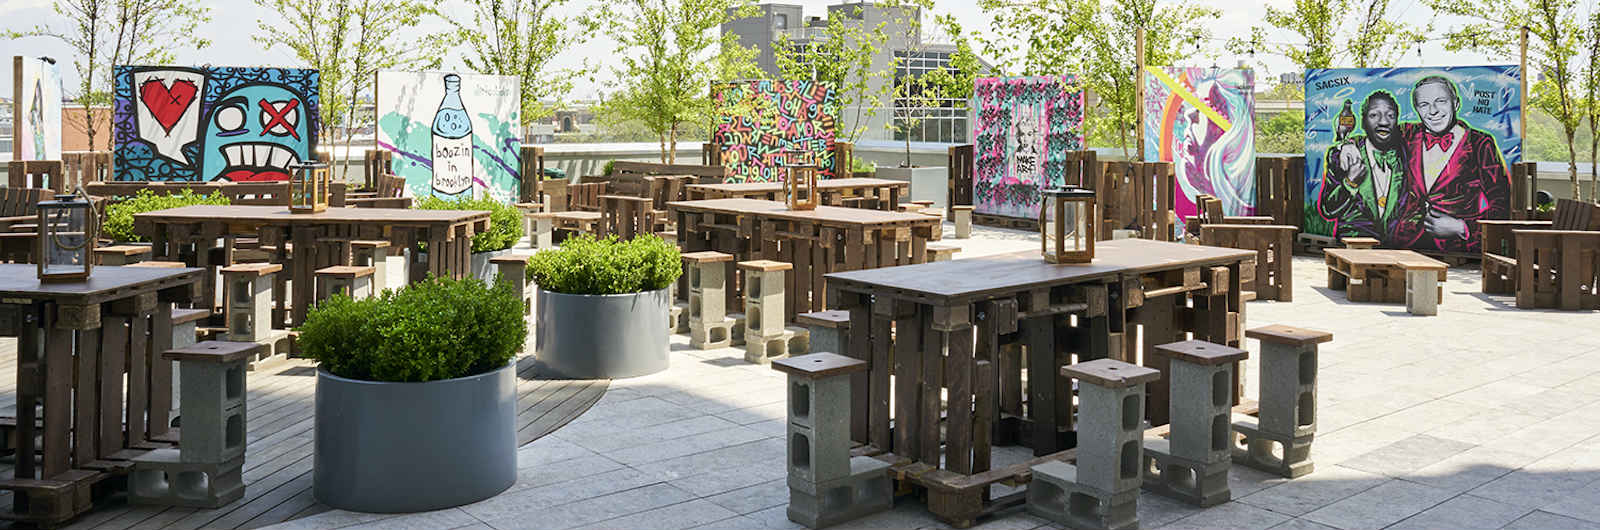 12 Beer Gardens to Officially Welcome Summer